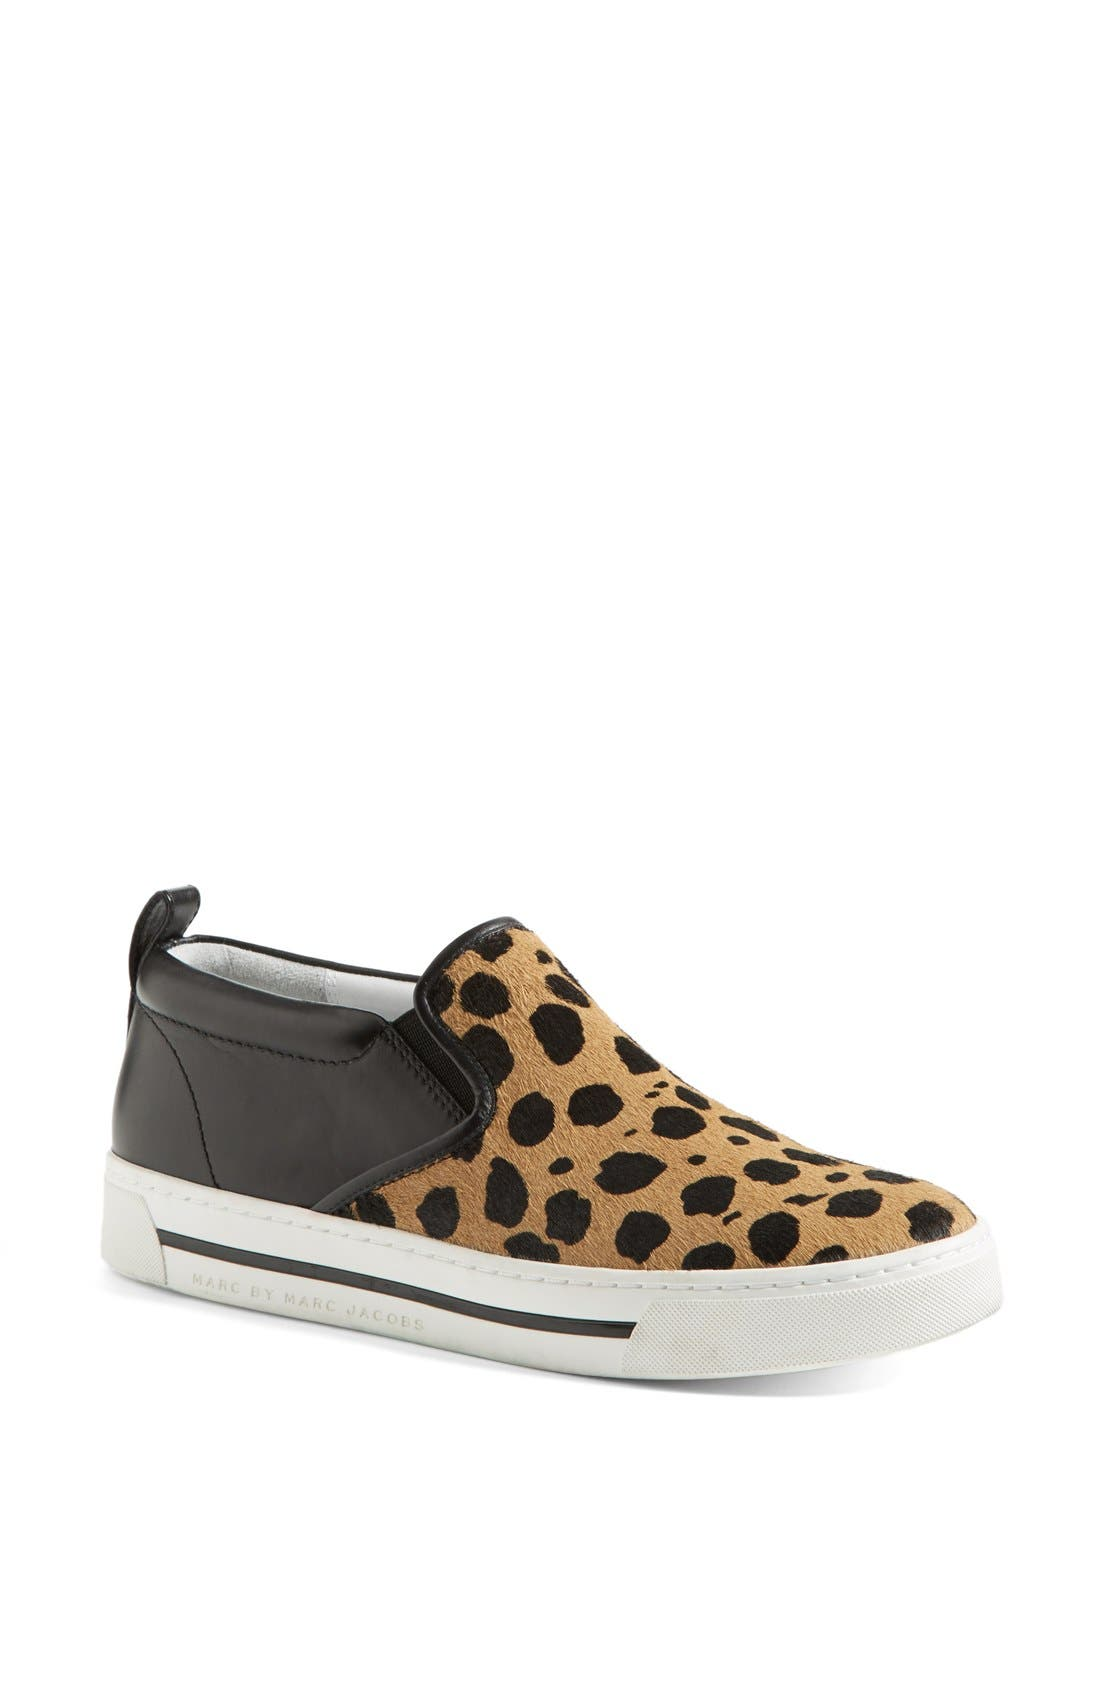 Alternate Image 1 Selected - MARC BY MARC JACOBS Leather & Calf Hair Slip-On Sneaker